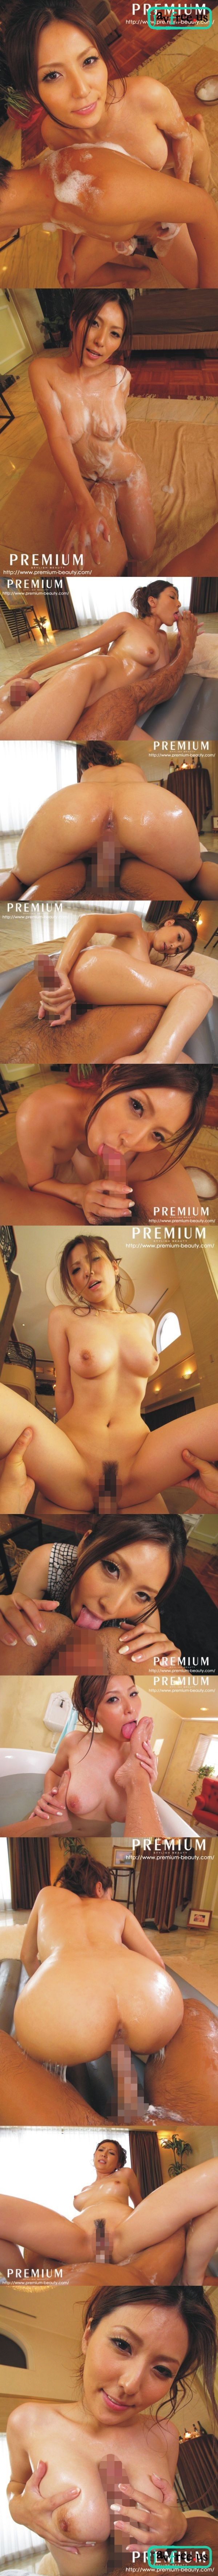 [PGD-461] PREMIUM STYLISH SOAP 椎名ゆな - image pgd-461 on https://javfree.me